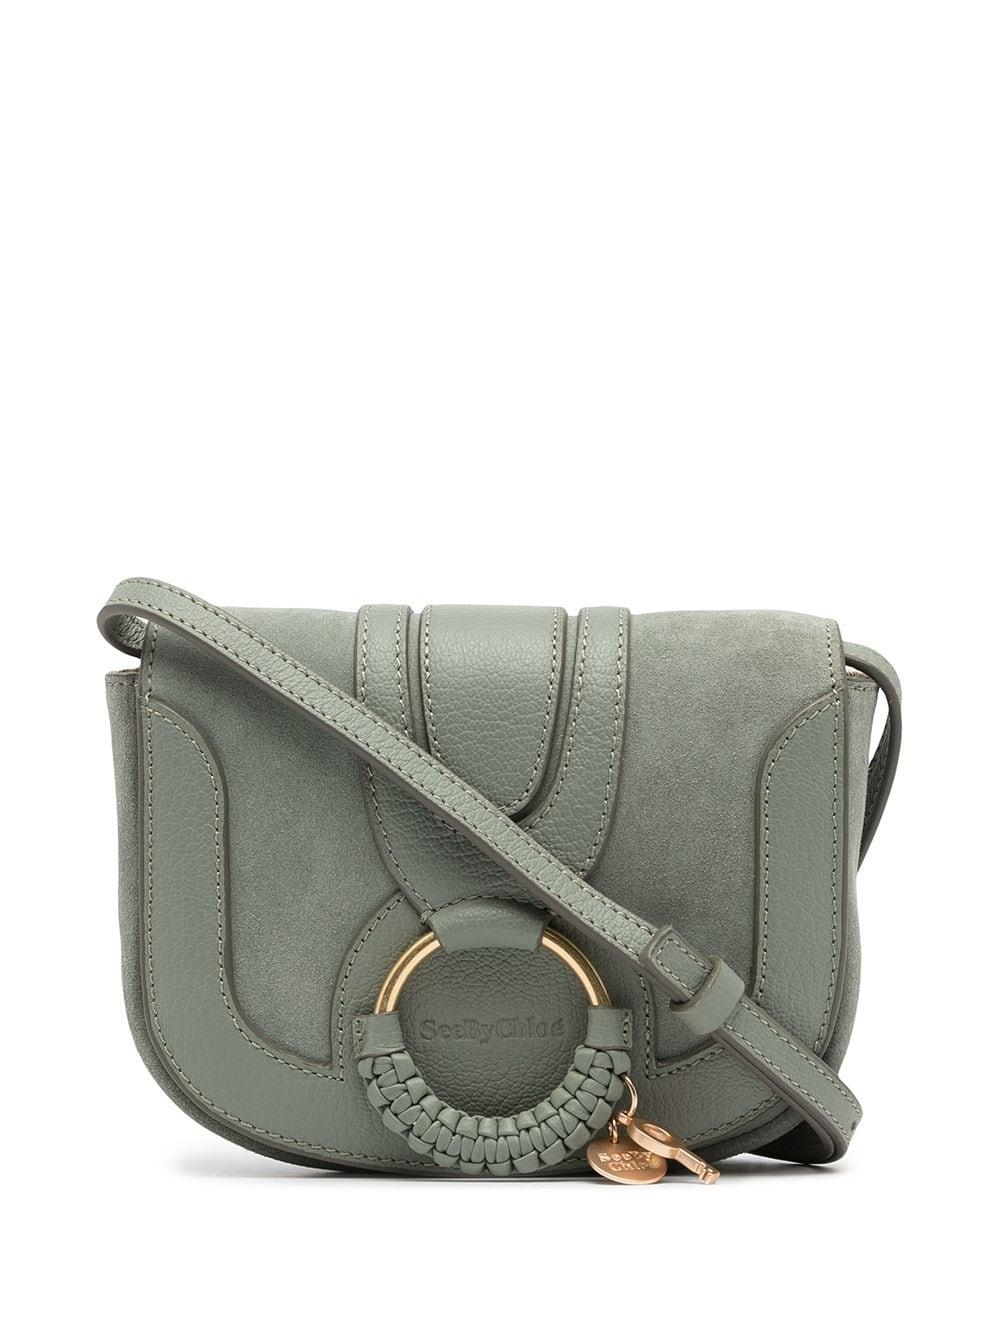 Hana Mini Suede Crossbody